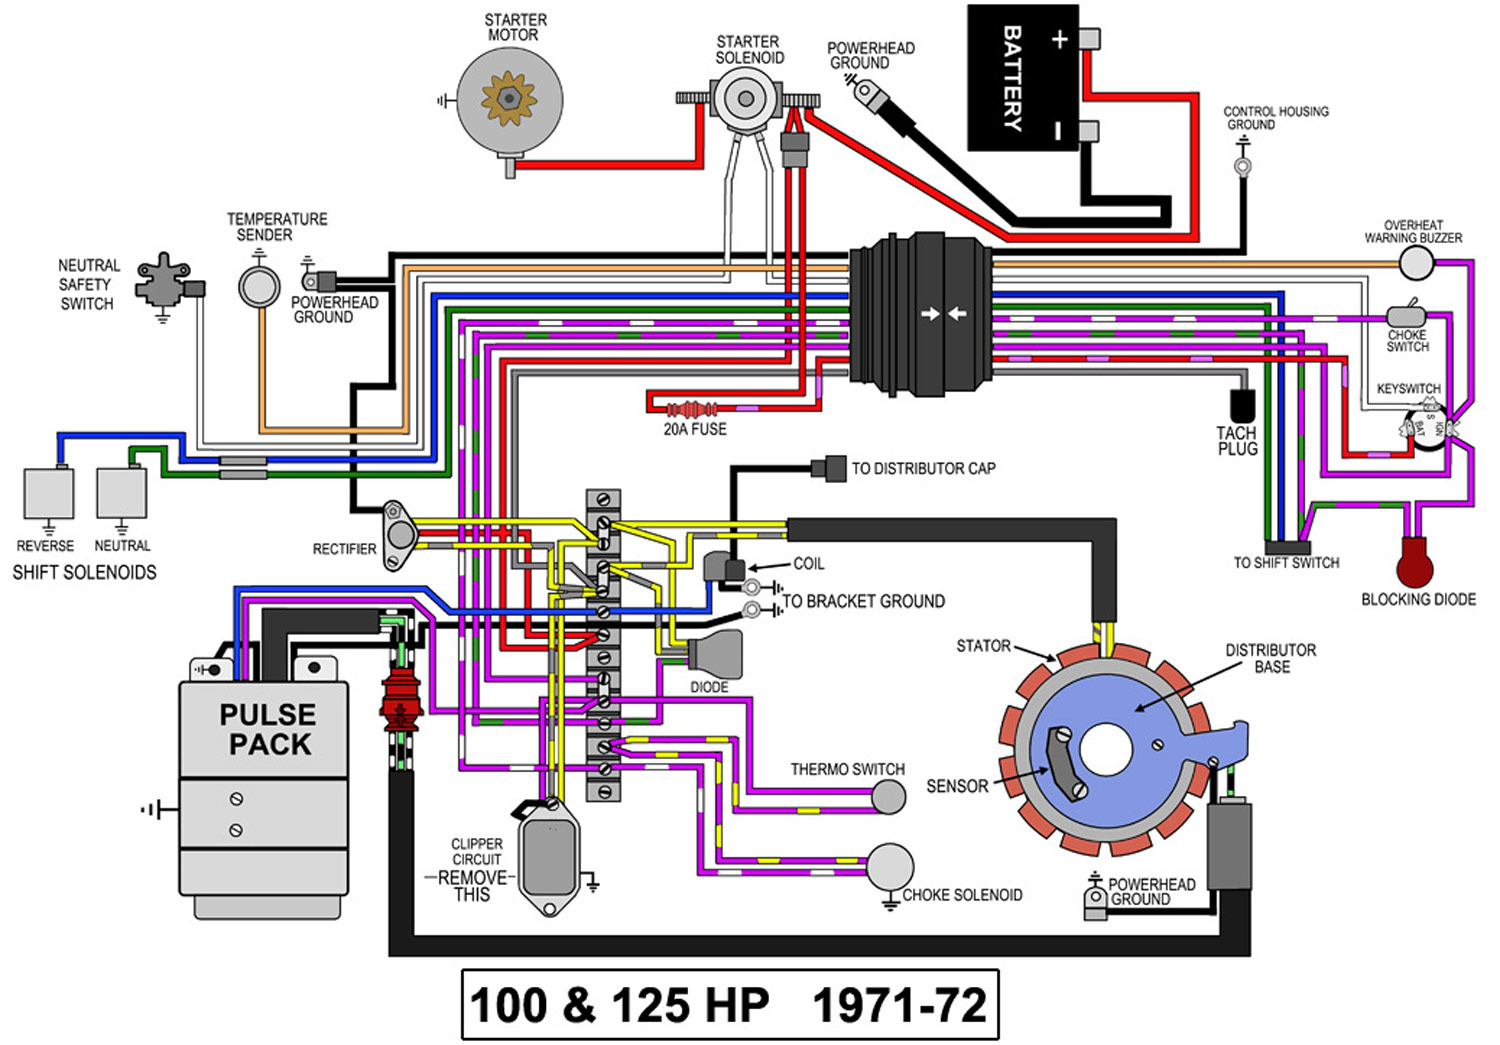 1992 Evinrude E40elenj Wiring Diagram on